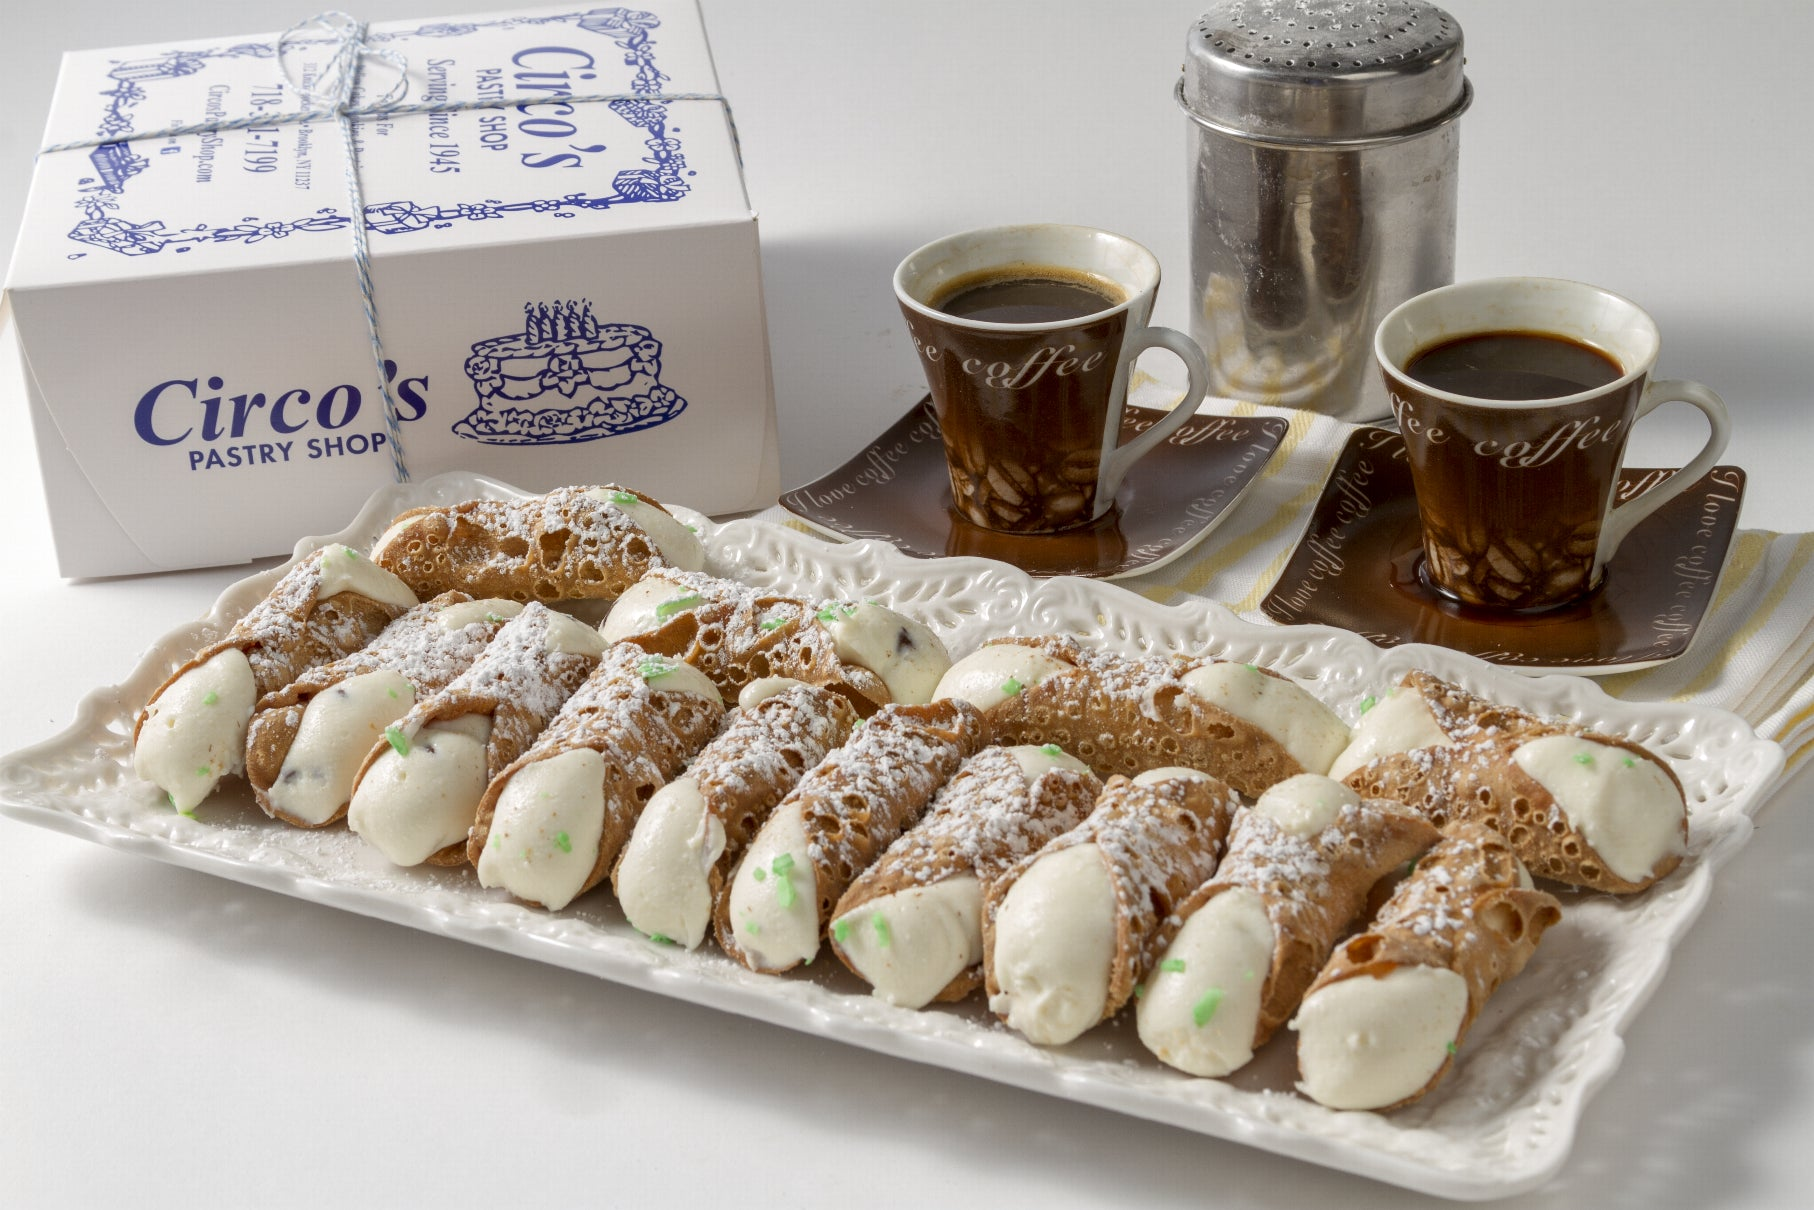 Small Cannoli (1 LB Box about 13 pieces)